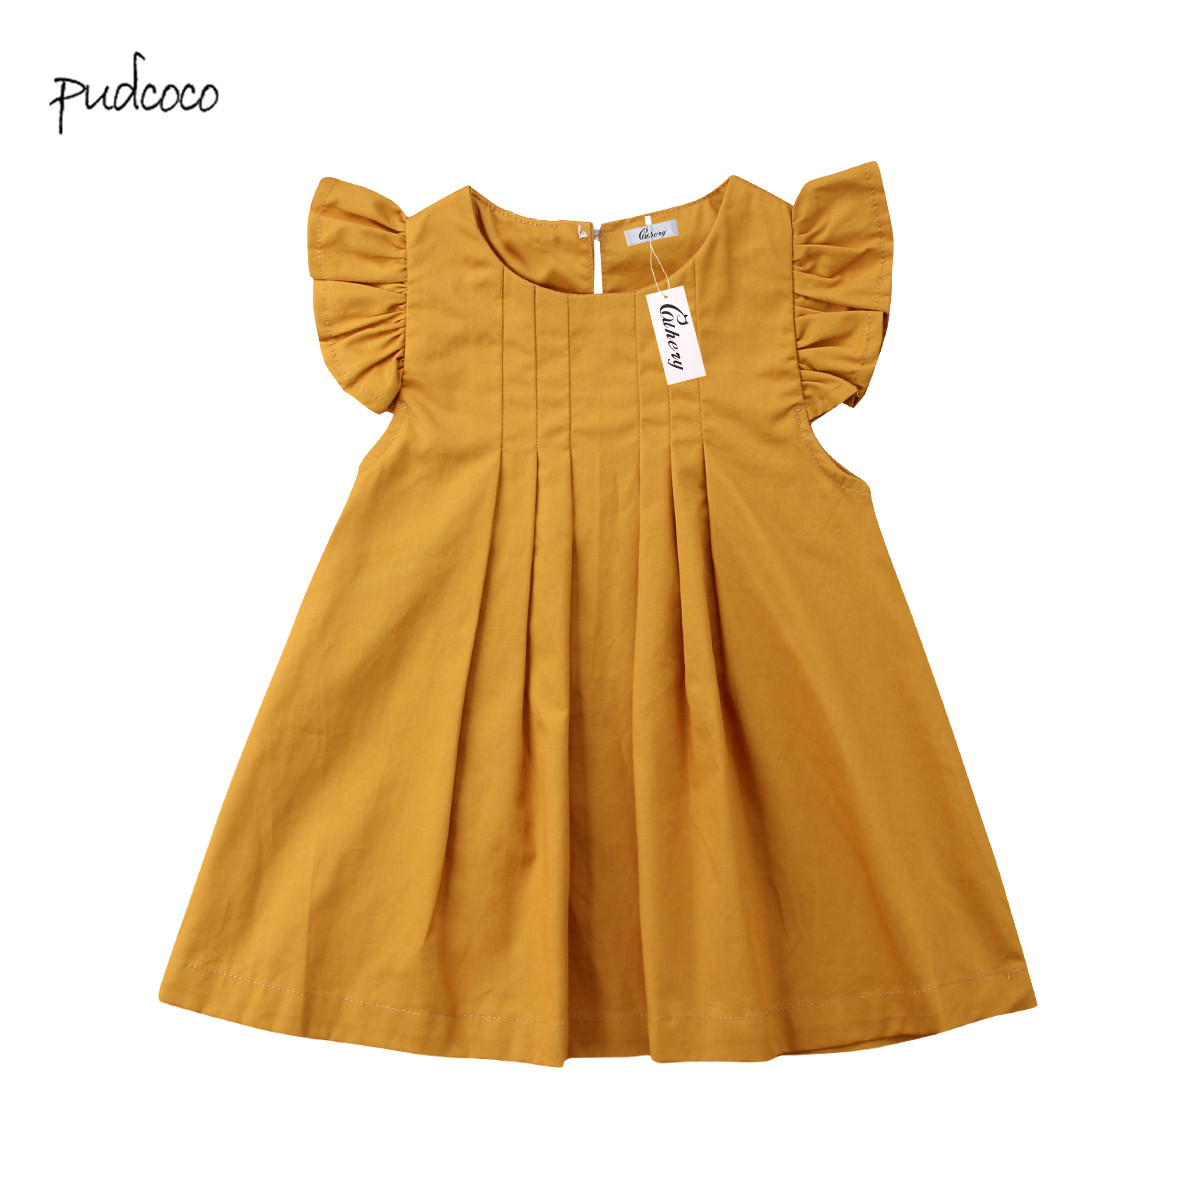 Pudcoco 2019 Brand New Newborn Toddler Infant Baby Girls Summer Dress Casual Princess Party Tutu Solid Dress